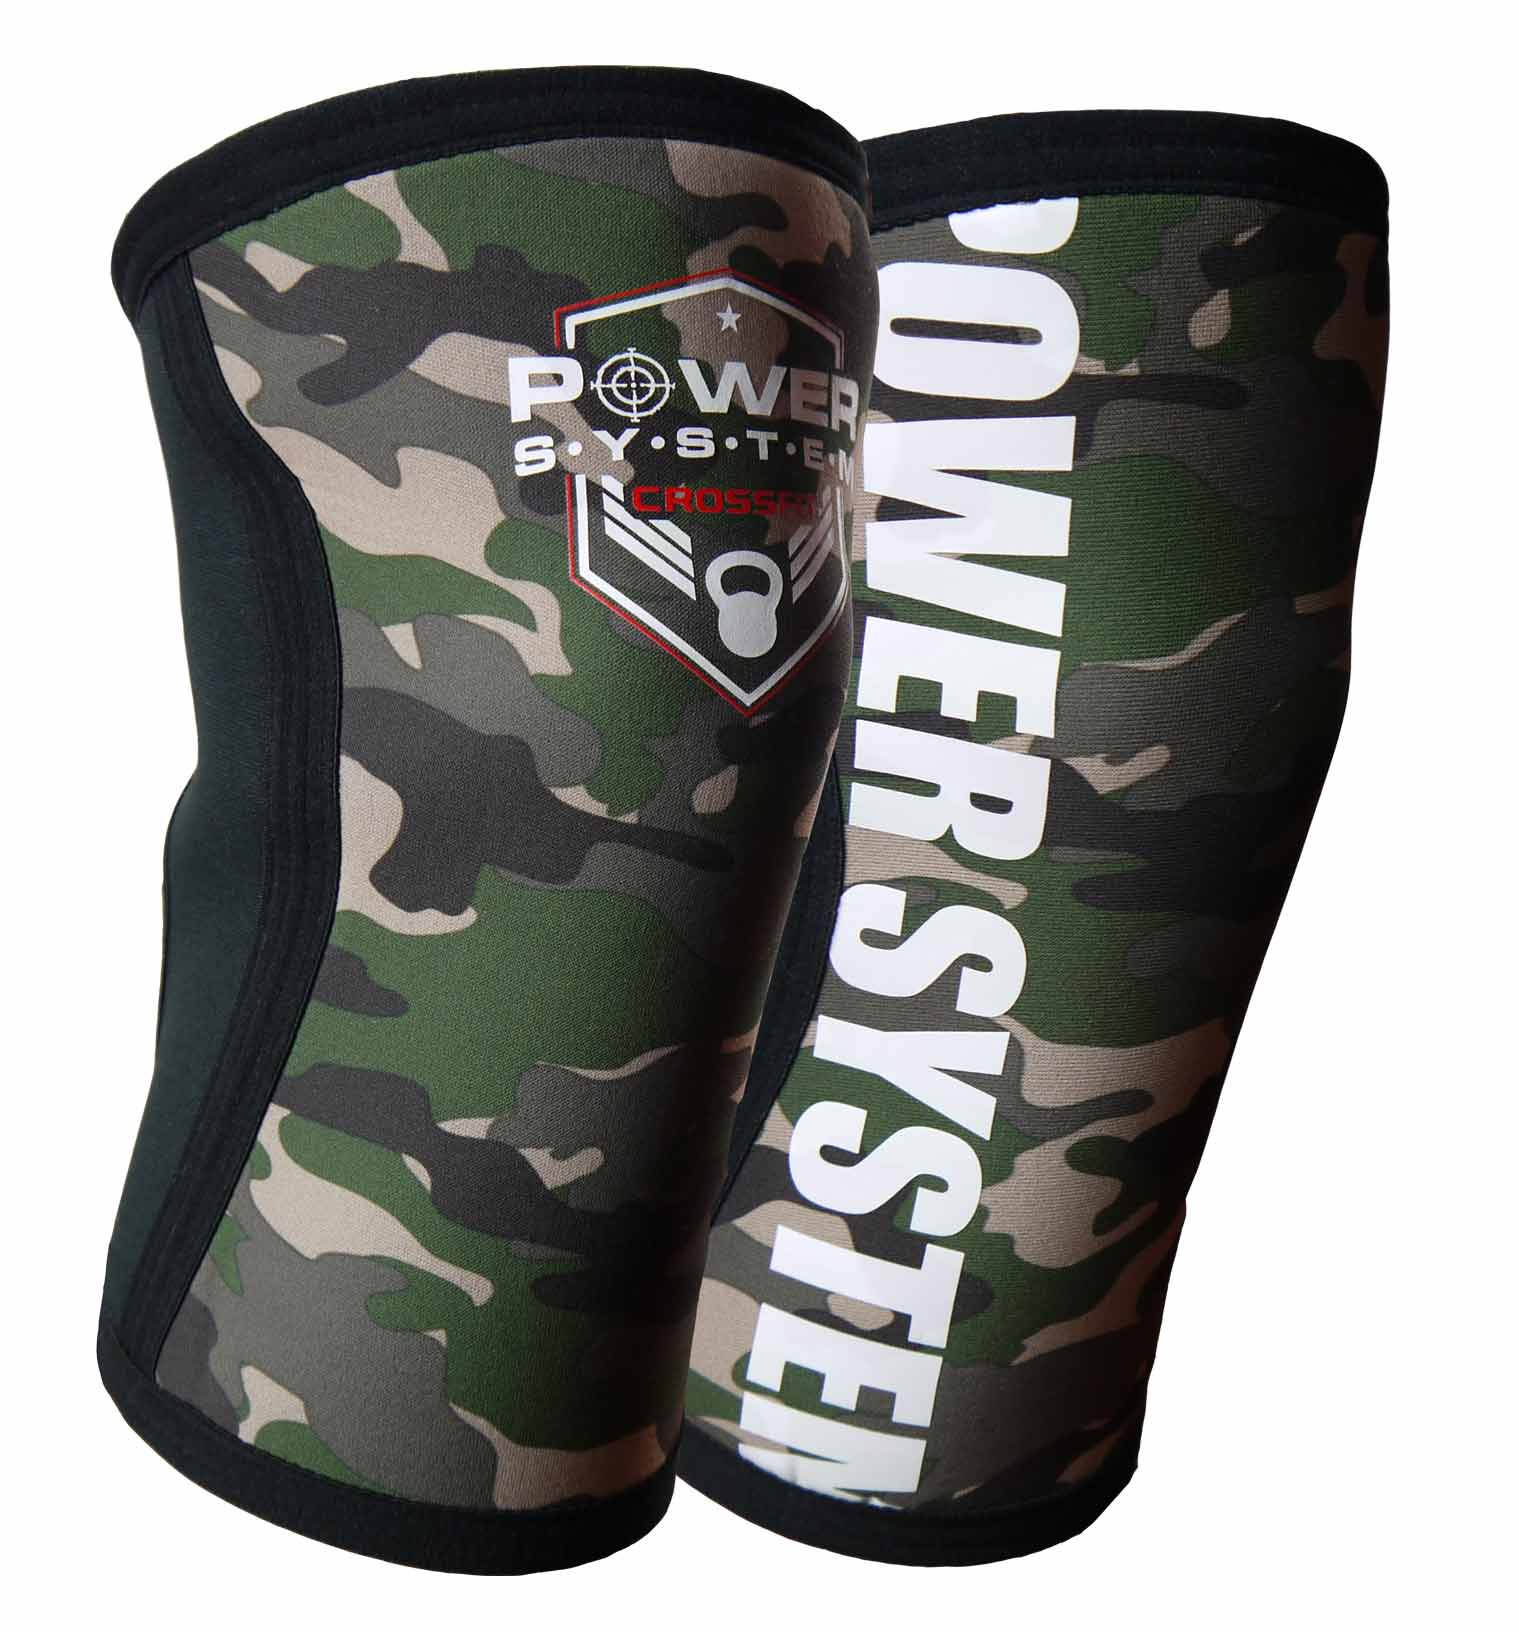 Power System kolenní bandáž KNEE SLEEVES CAMO vel.S/M 2ks